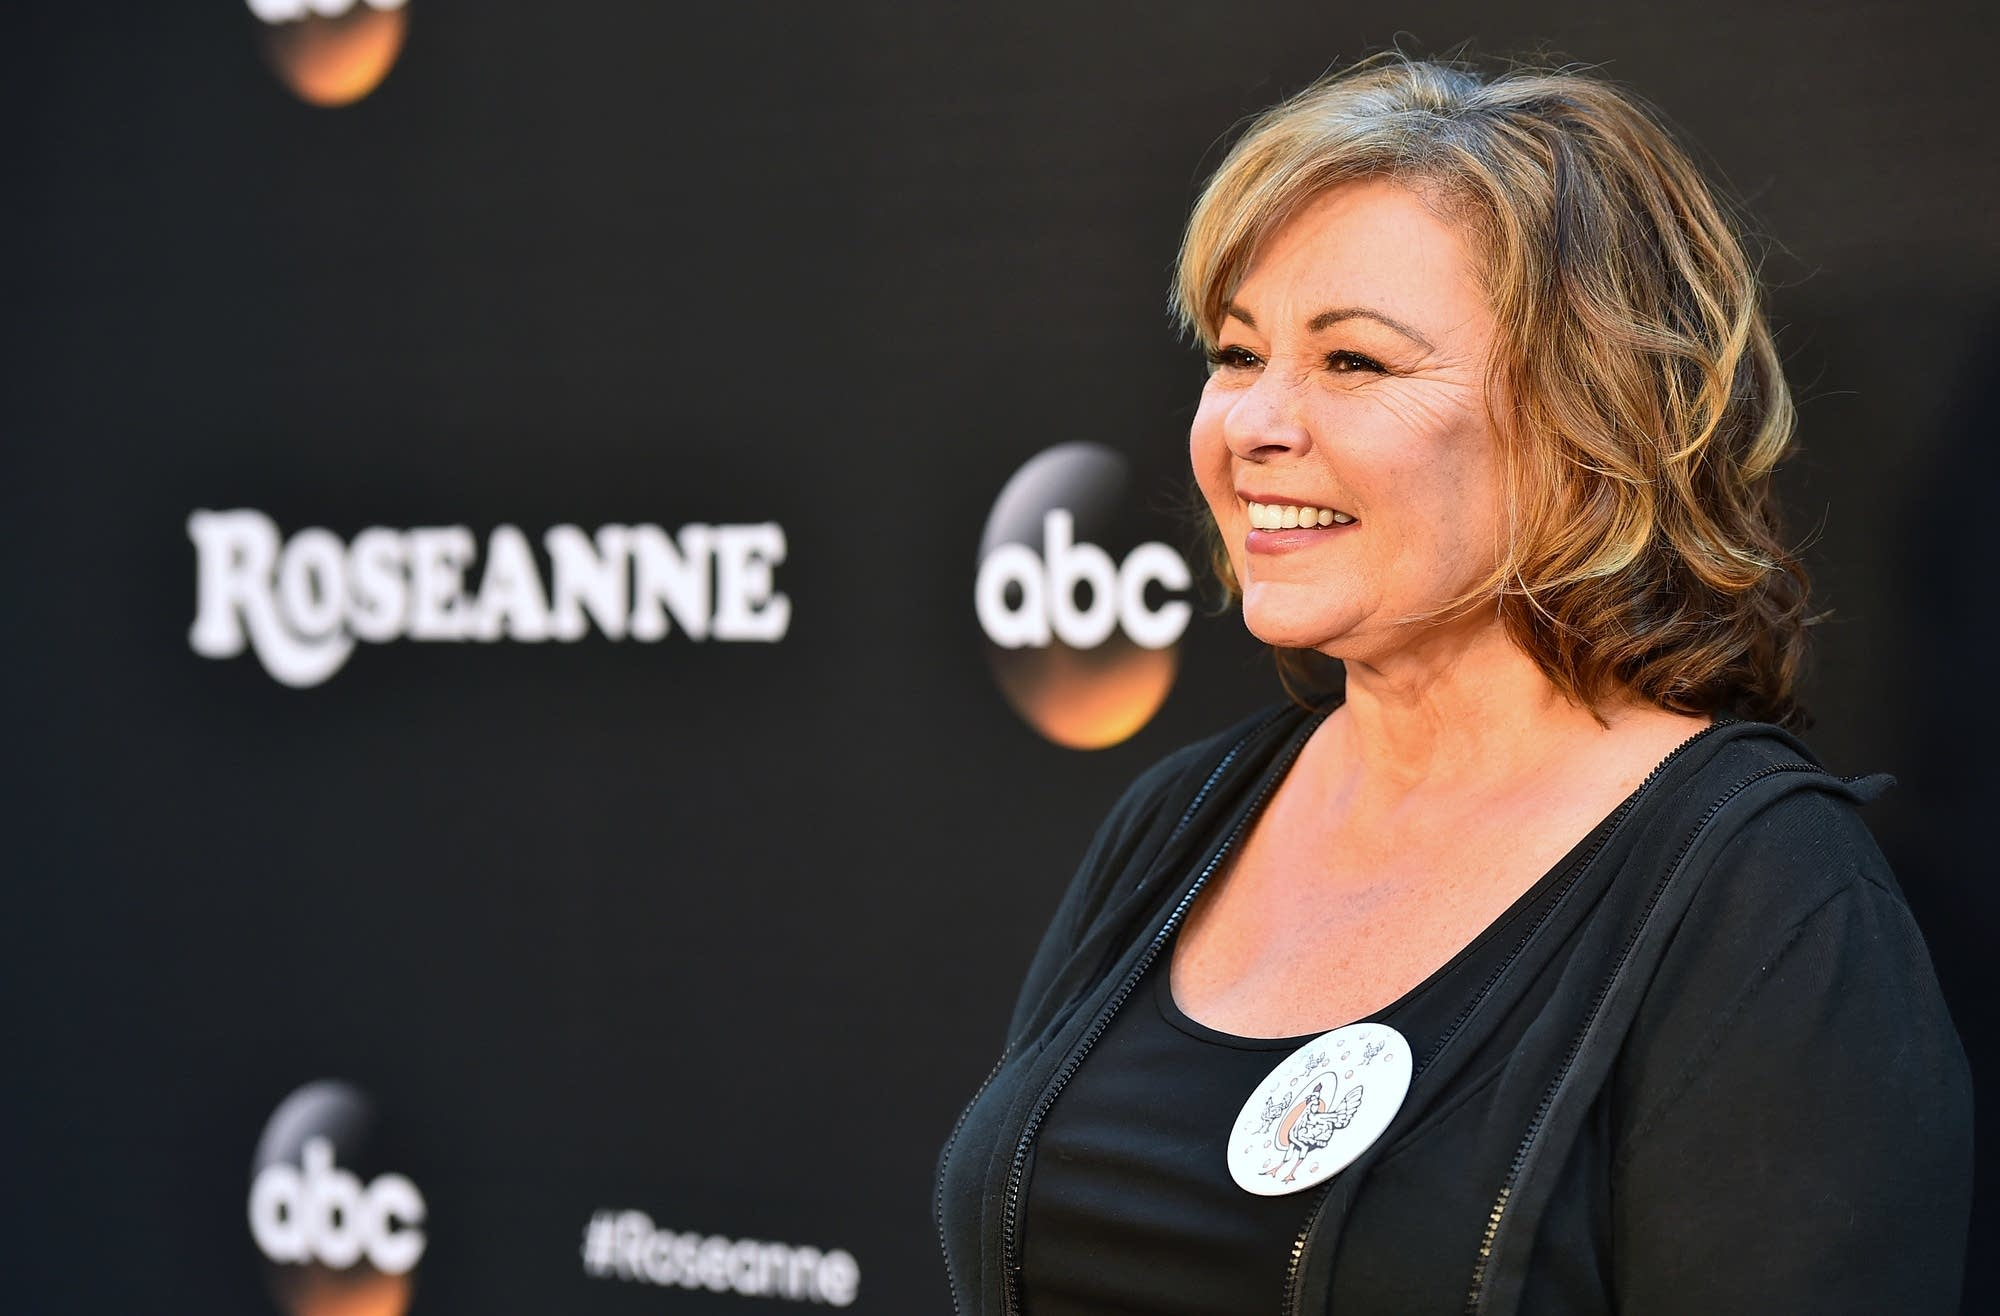 Roseanne Barr attends the